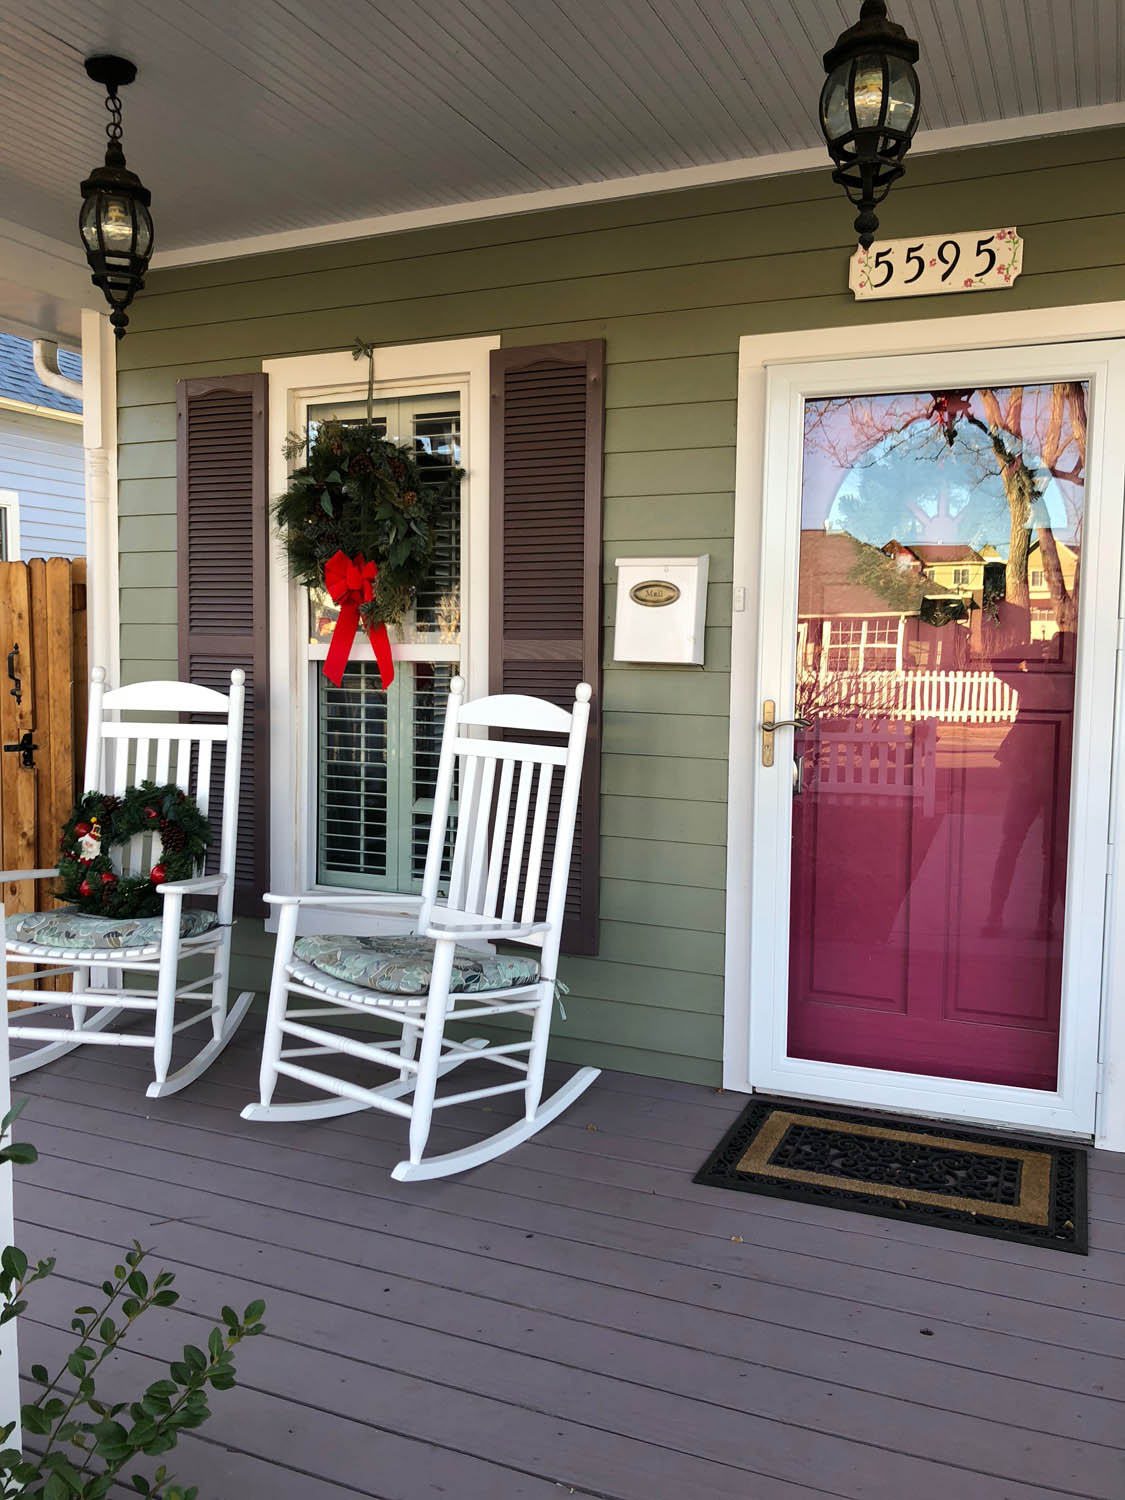 Ashley's front porch with Christmas wreath